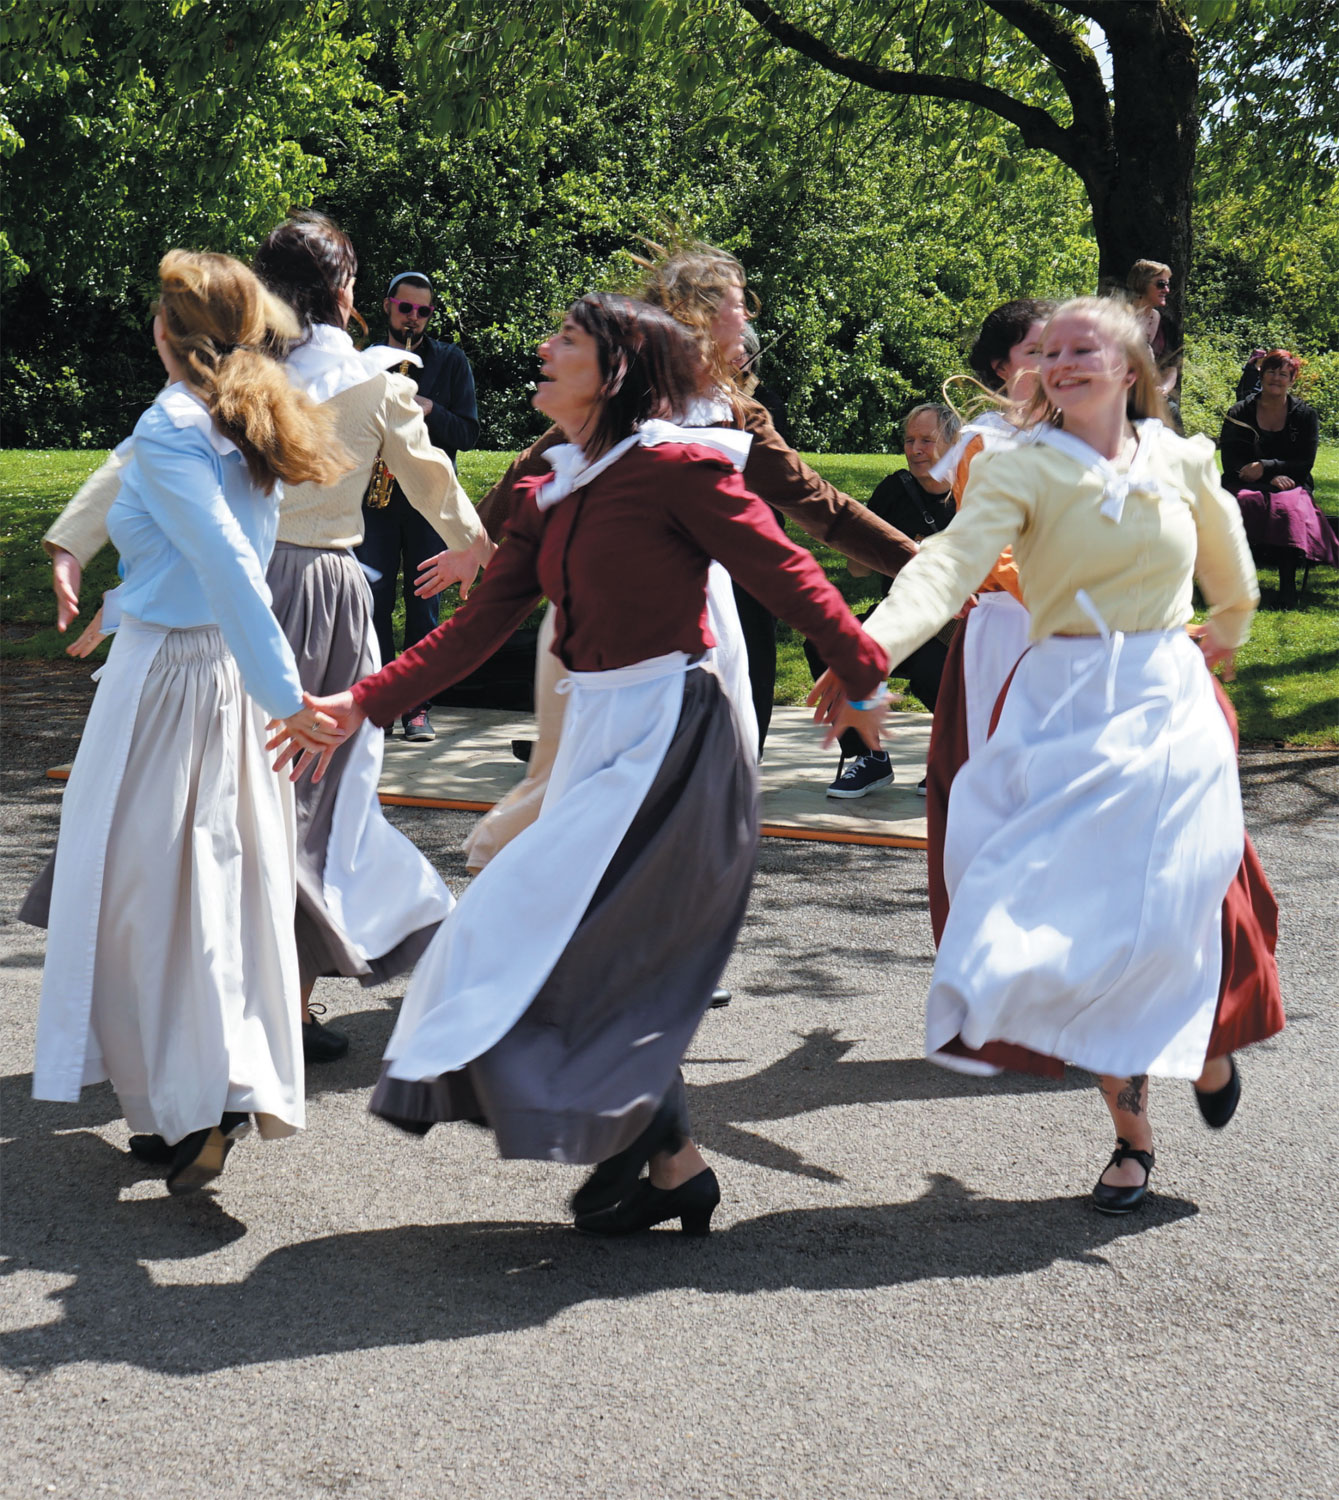 Celtic knot: Cornish dancers display their heritage. Photo: Stephen Lyons